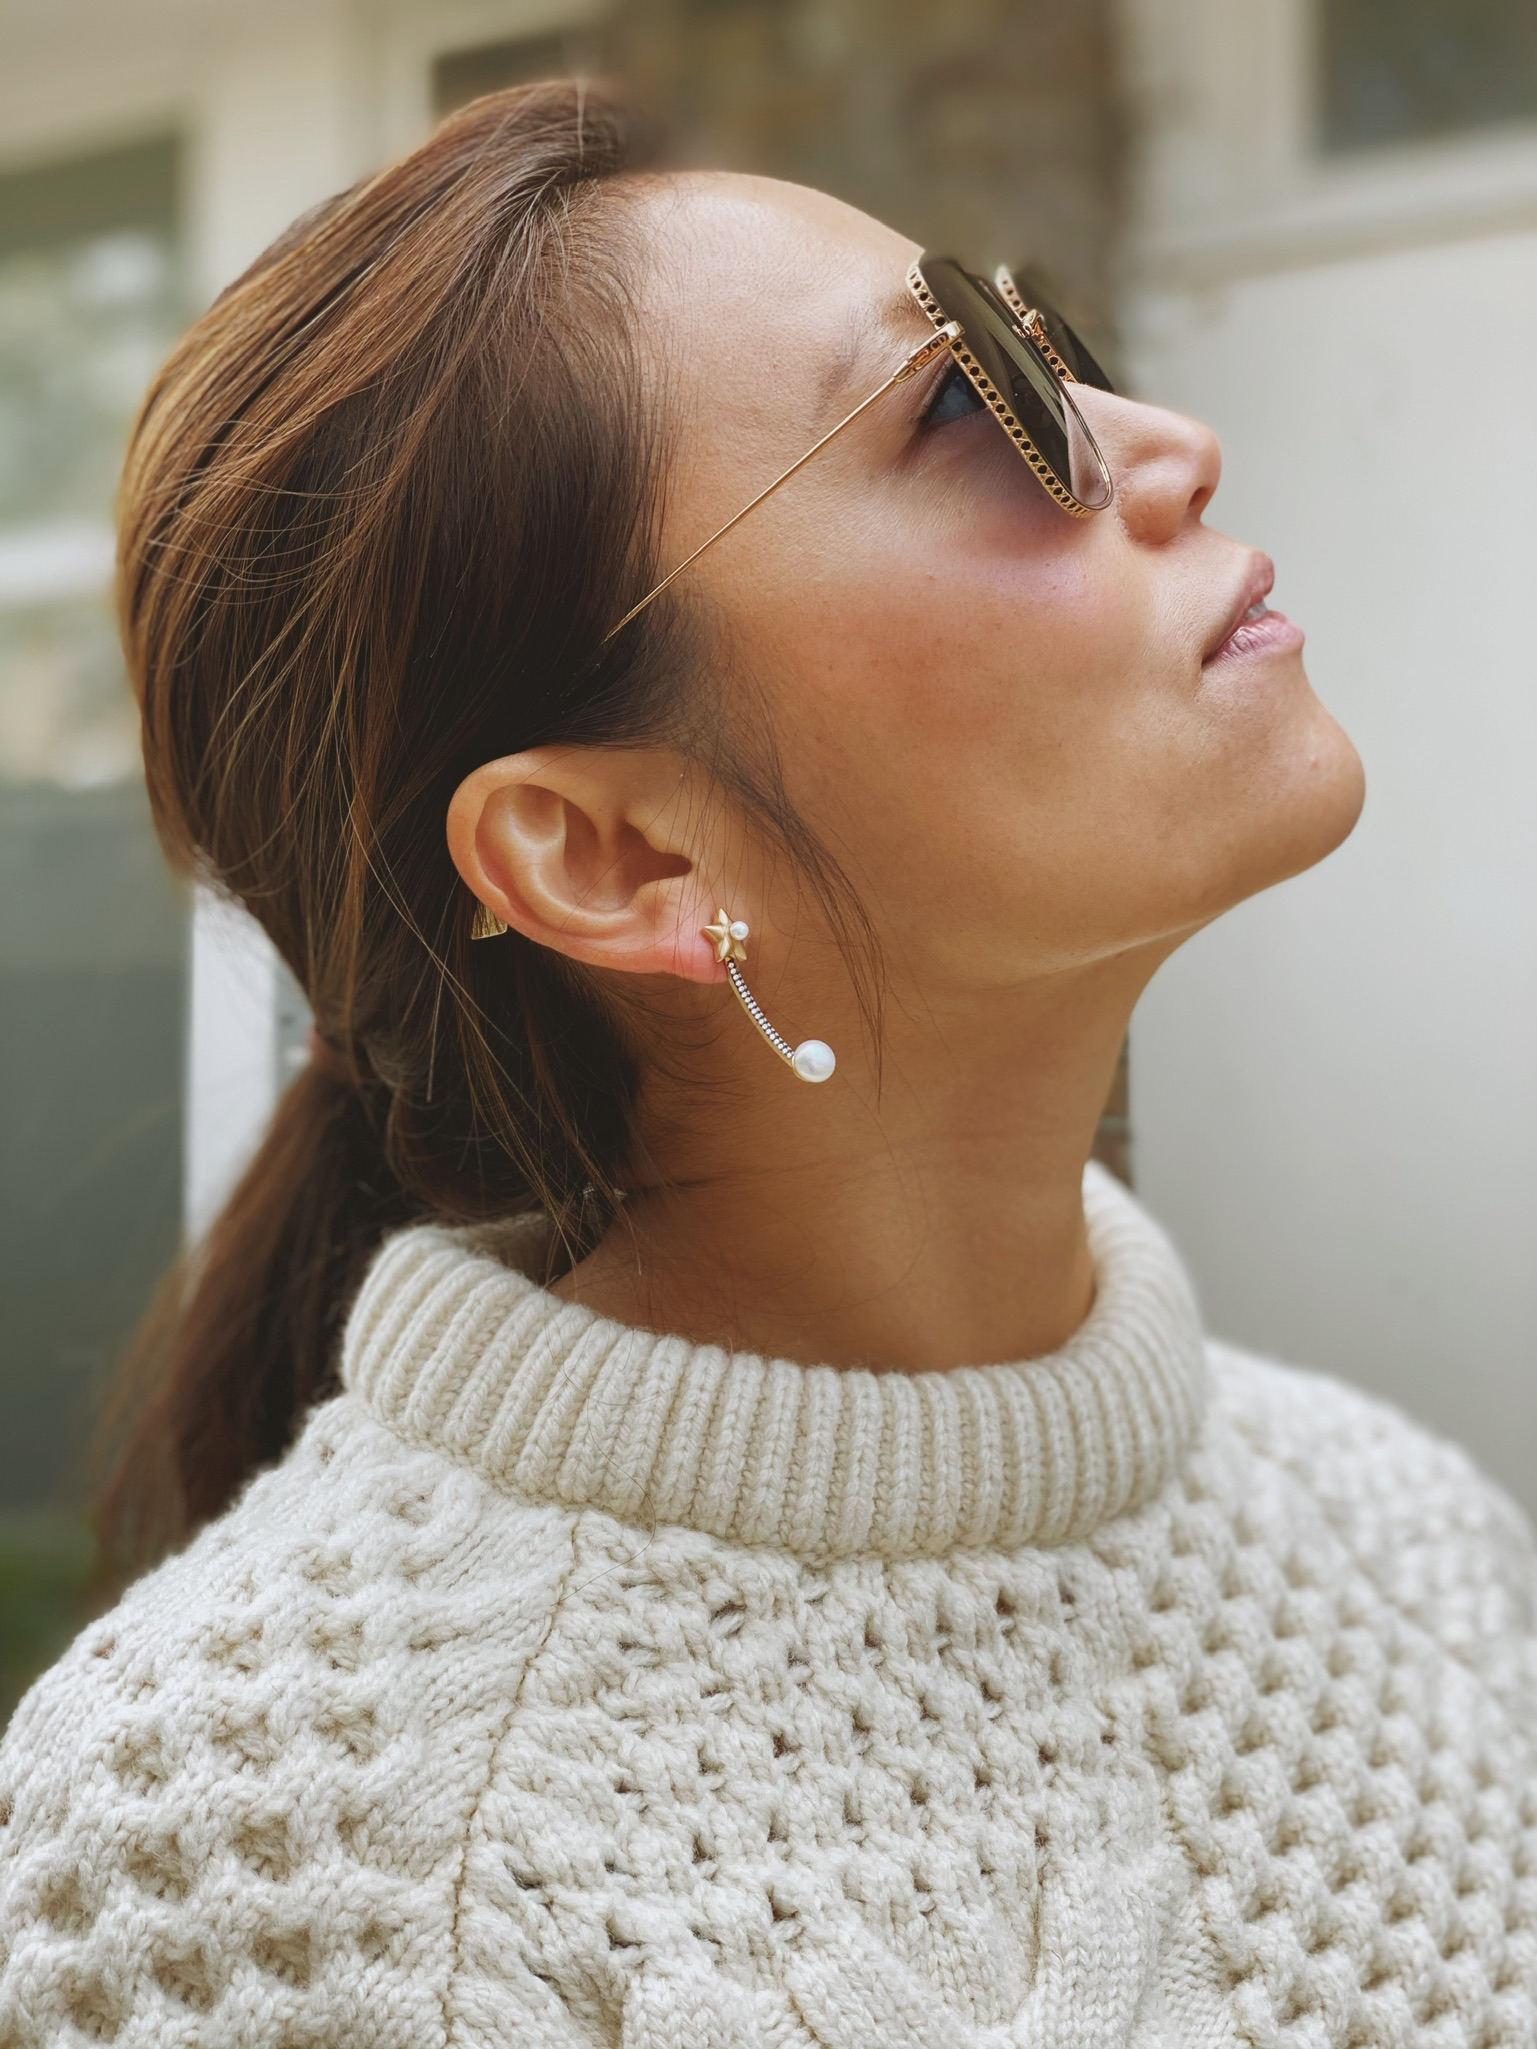 Star Jacket Earrings by AMMANII on curated-crowd.com